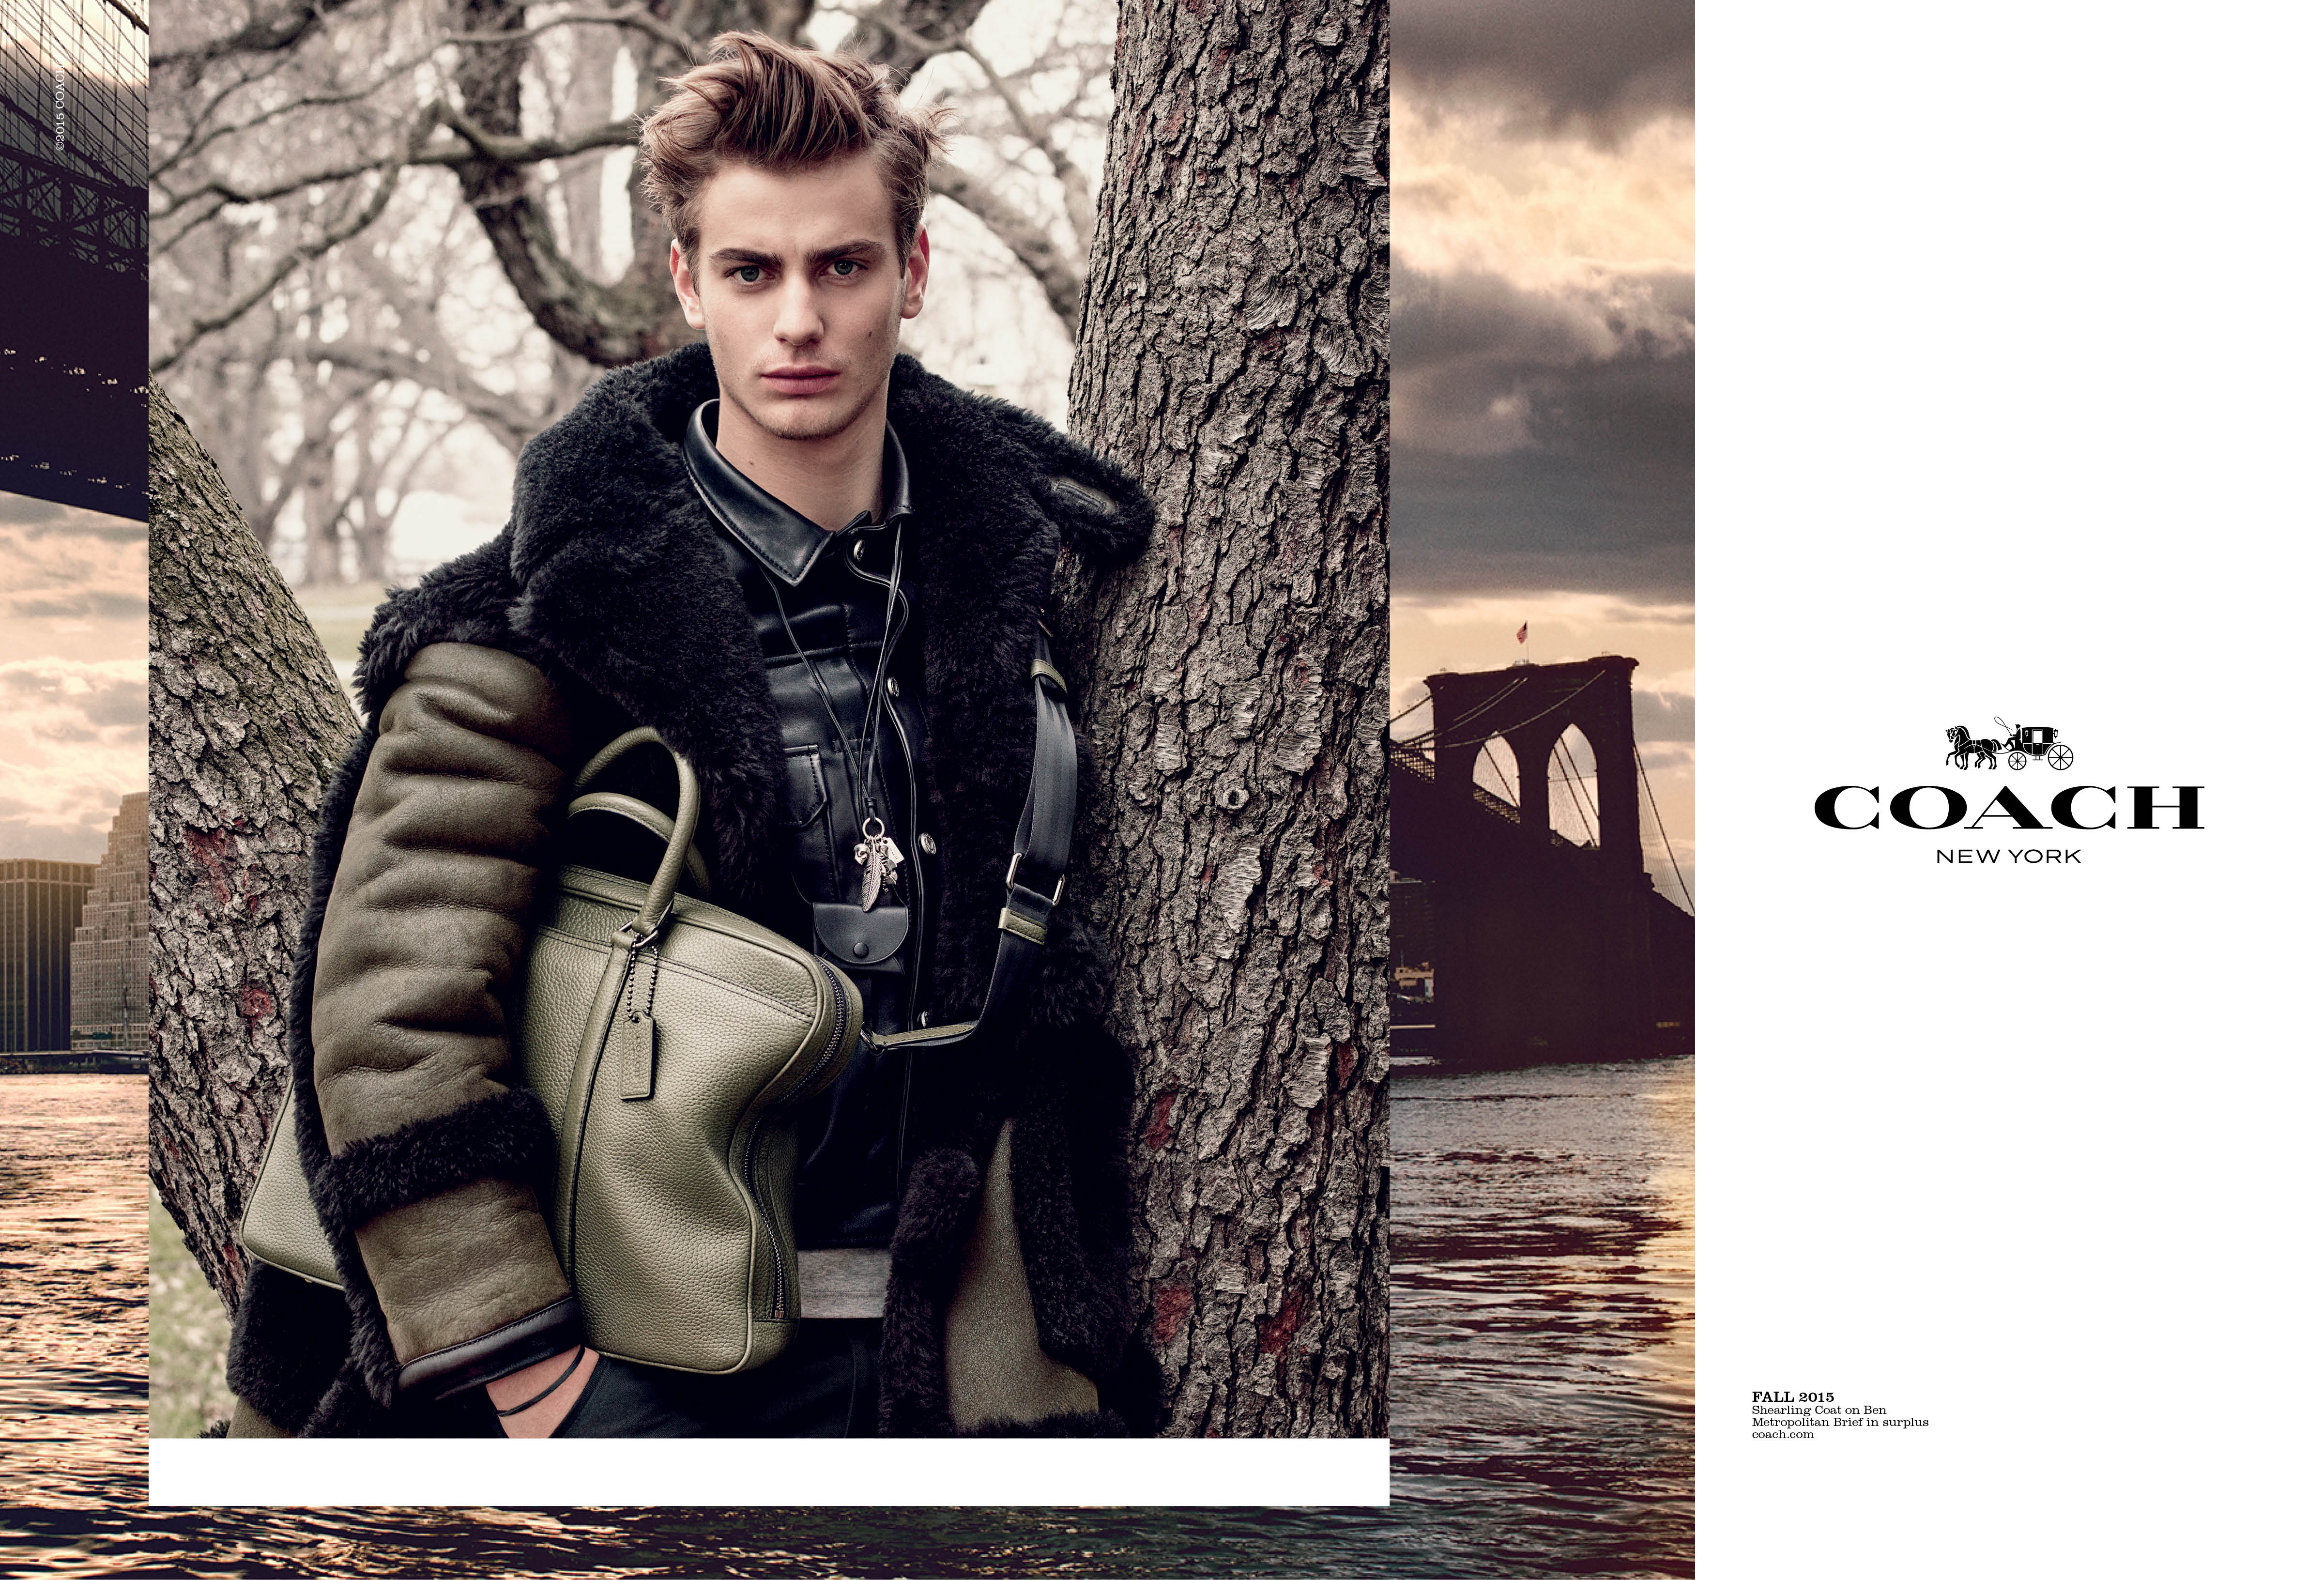 COACH LAUNCHES NEW FALL 2015 CAMPAIGN